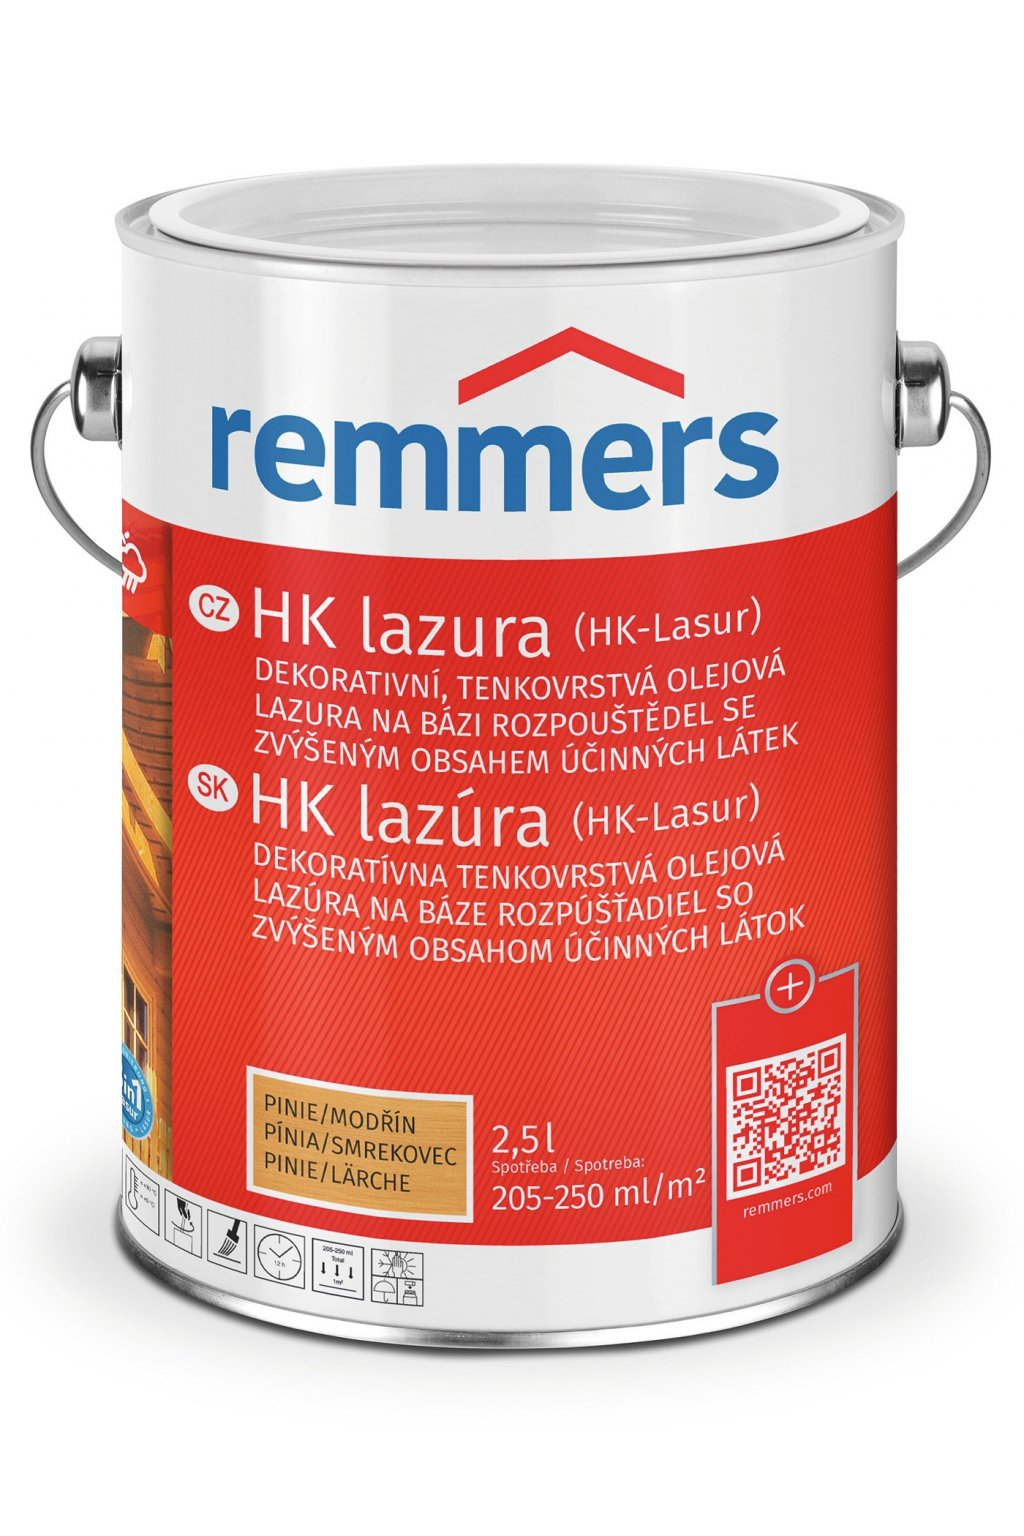 Remmers HK